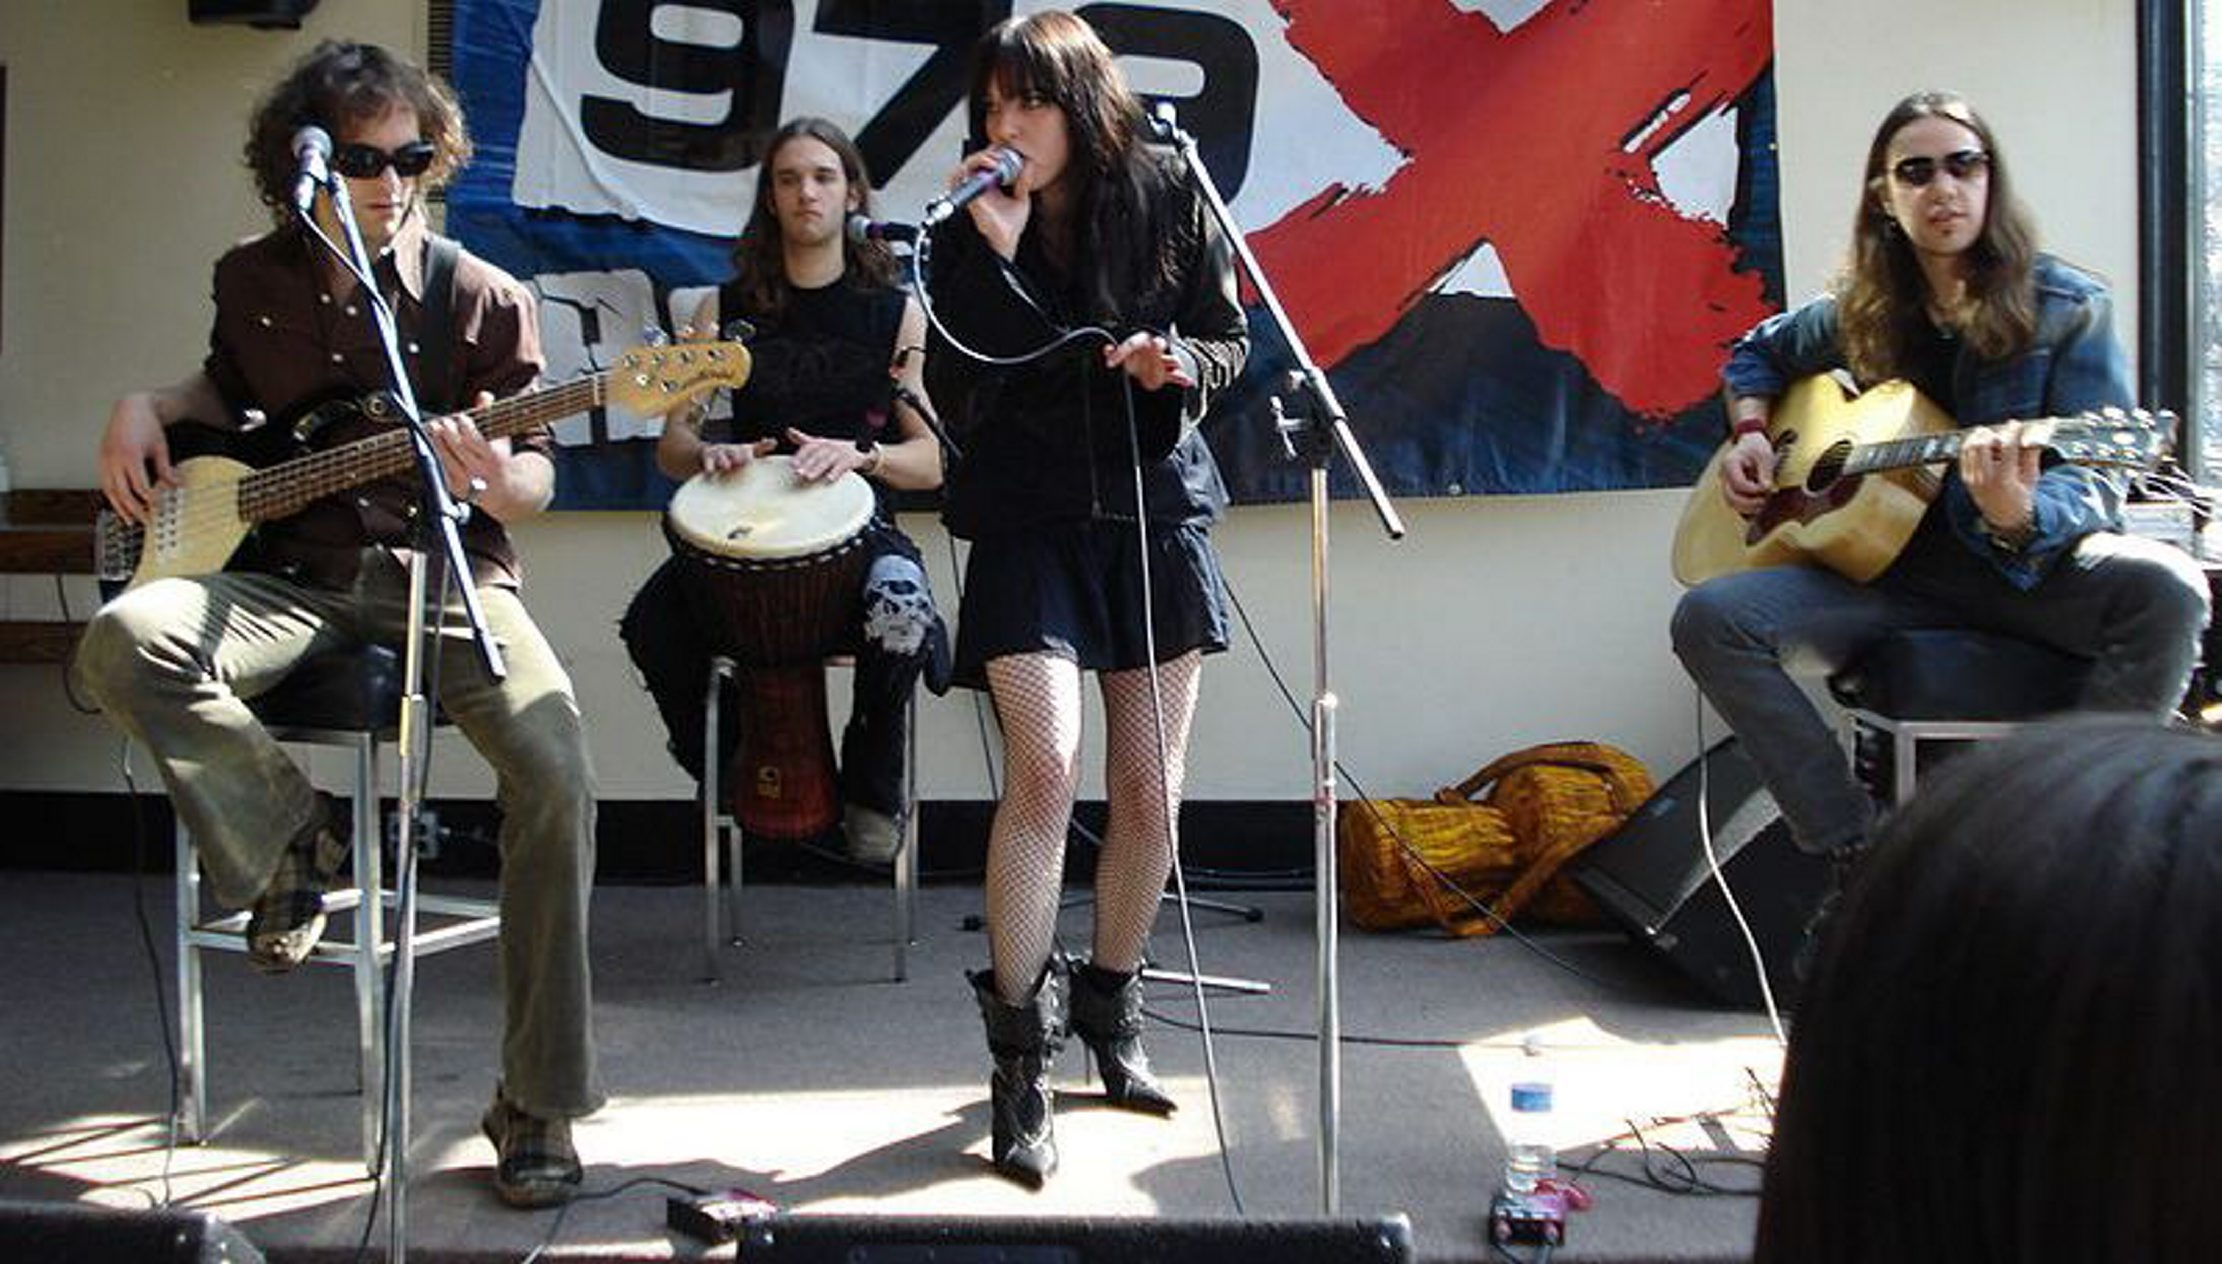 This file photo shows members of Halestorm during a performance.